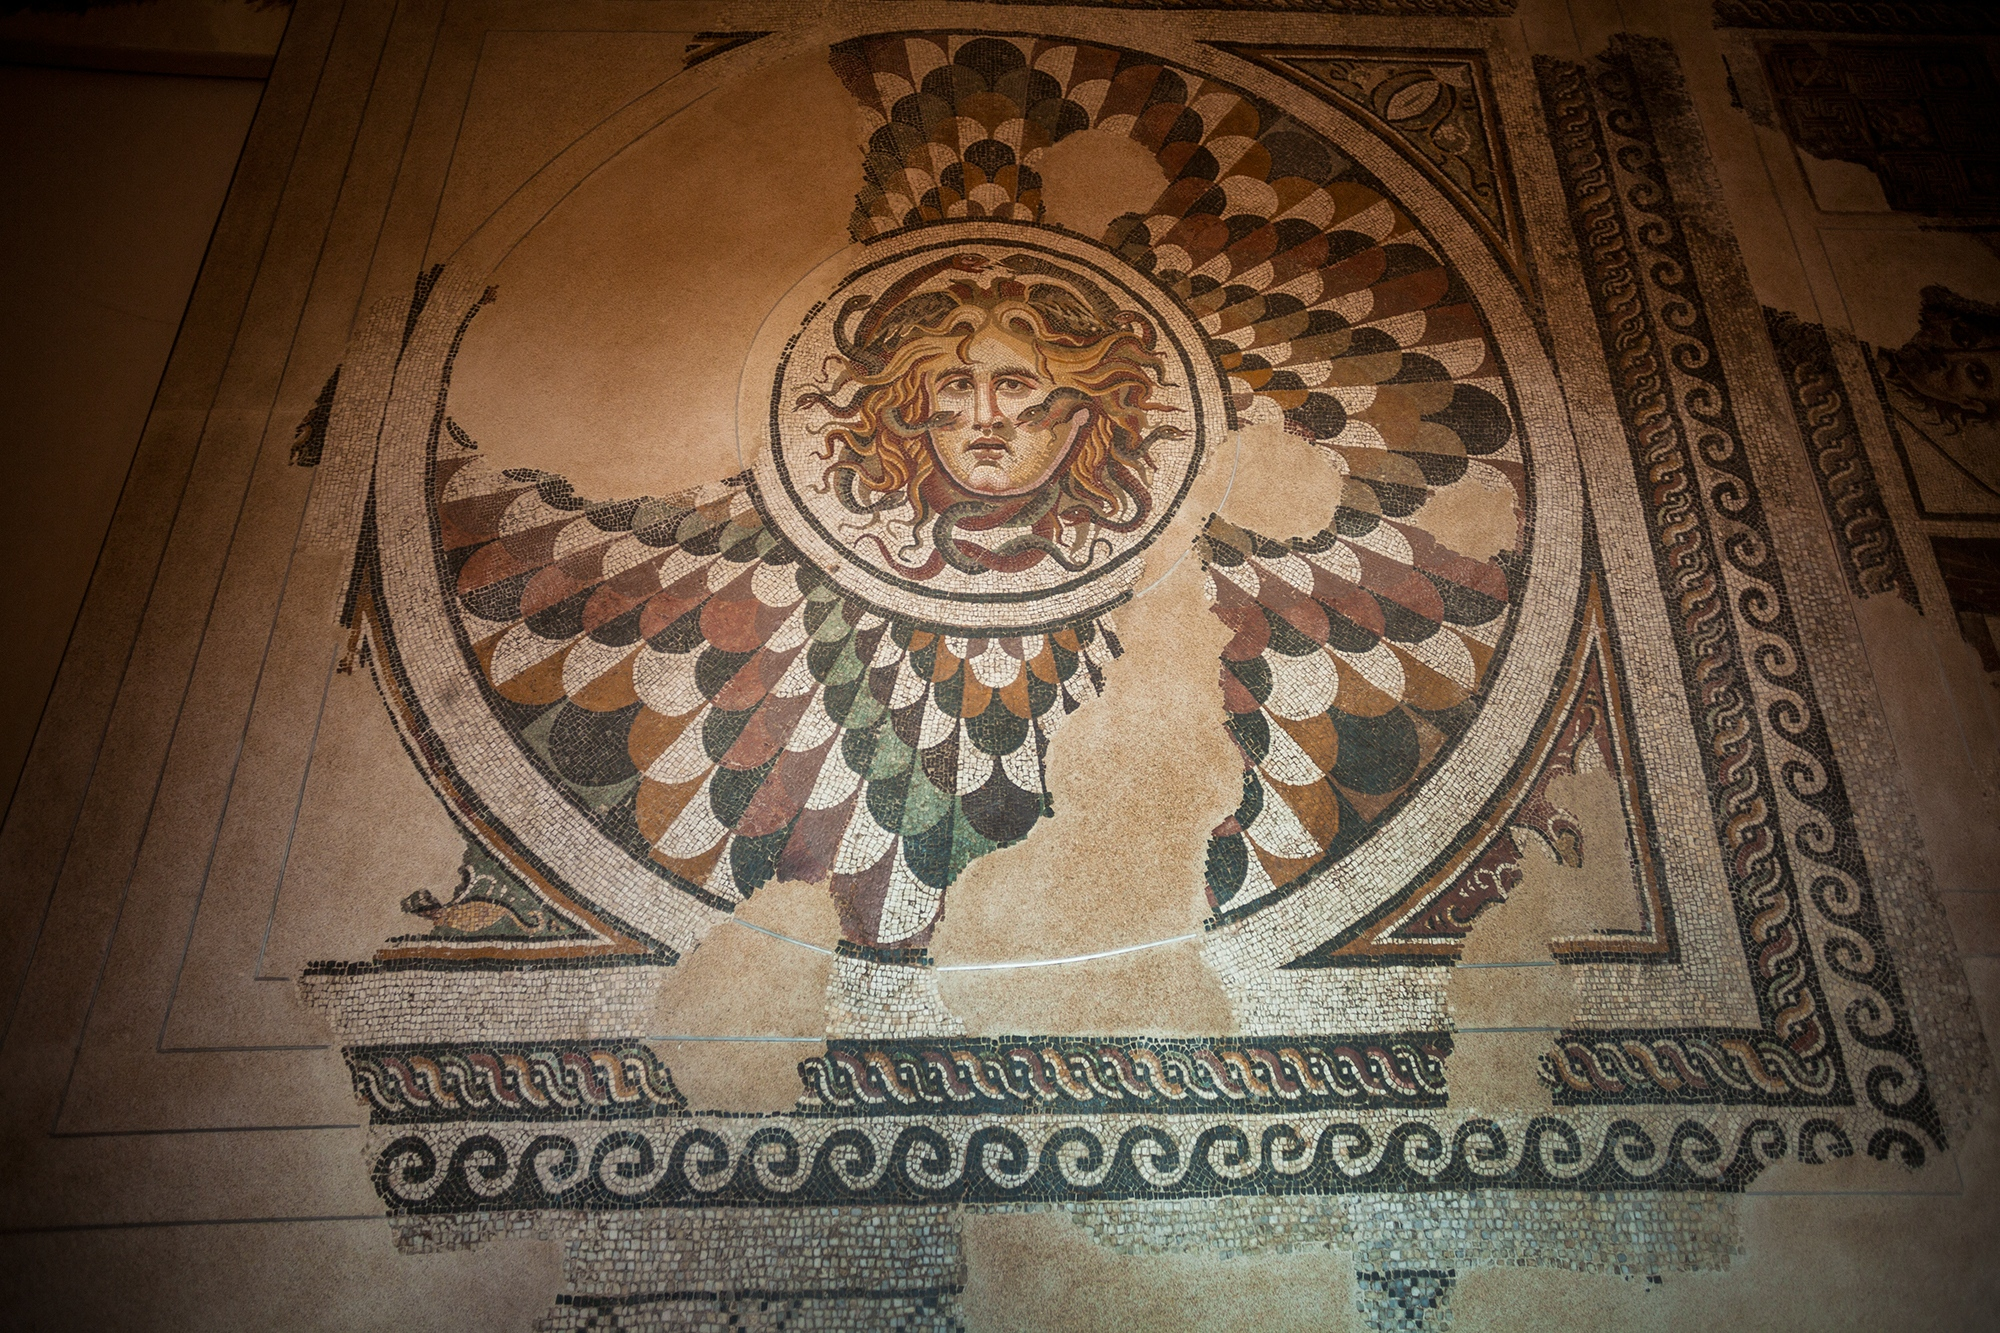 In May 2006, a precious polychrome mosaic made up of fine African marble tiles was found in Santa Palomba